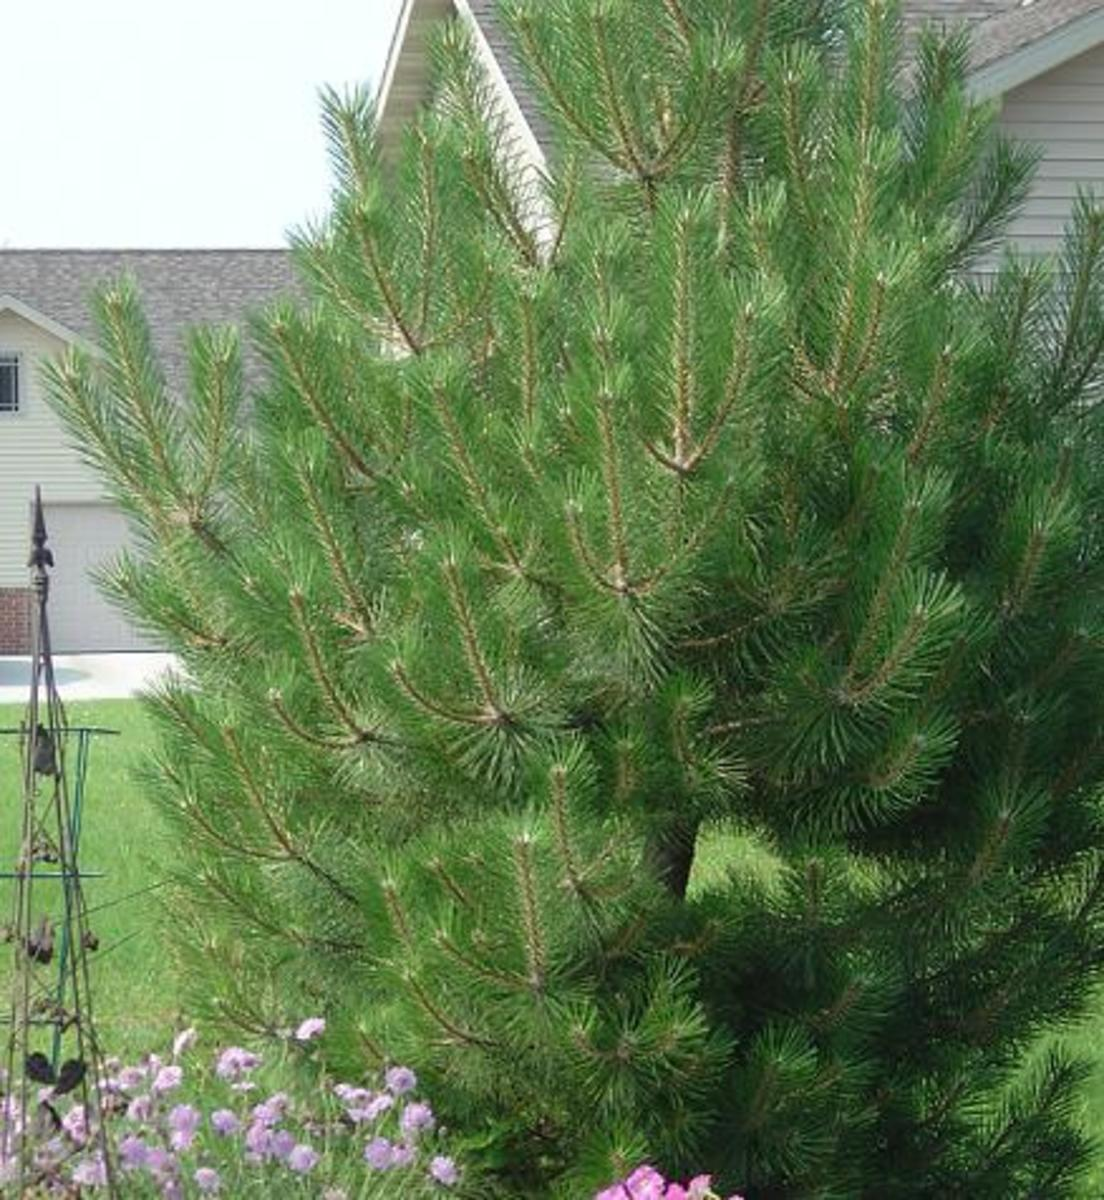 The Best Evergreen Trees for Privacy